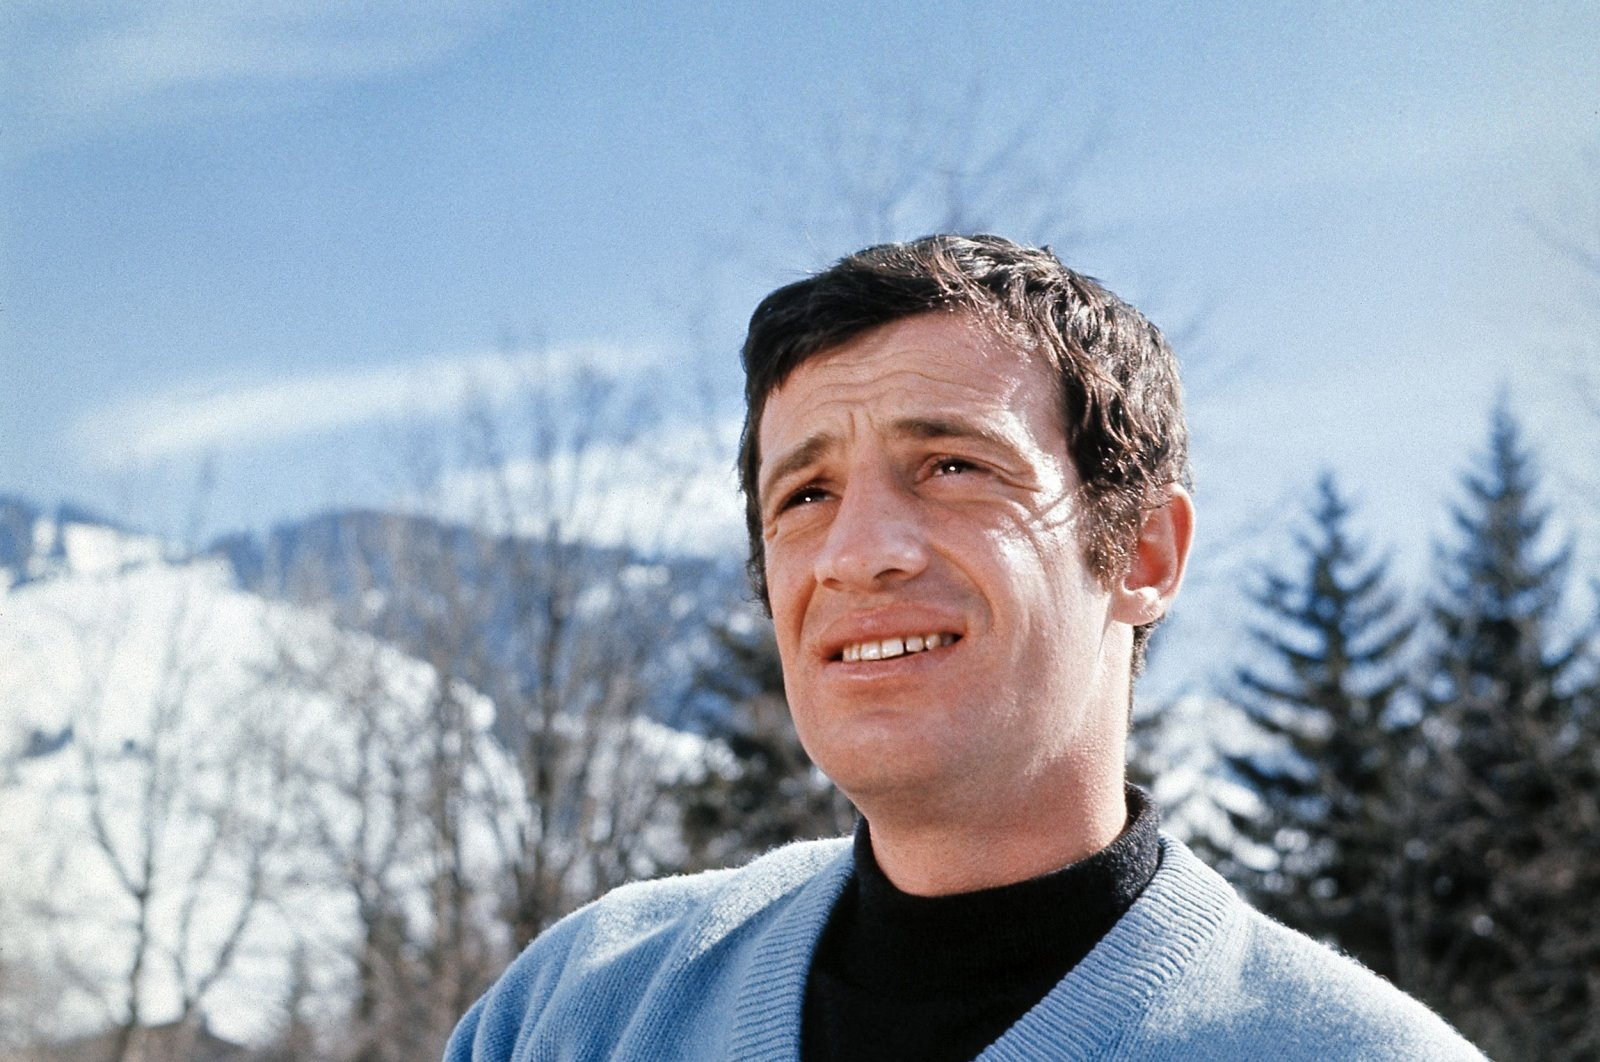 In this file photograph taken on January 1, 1960, Jean-Paul Belmondo, one of France's biggest screen stars and a symbol of 1960s New Wave cinema, poses during his winter sports holiday in Essonne, France. (AFP Photo)